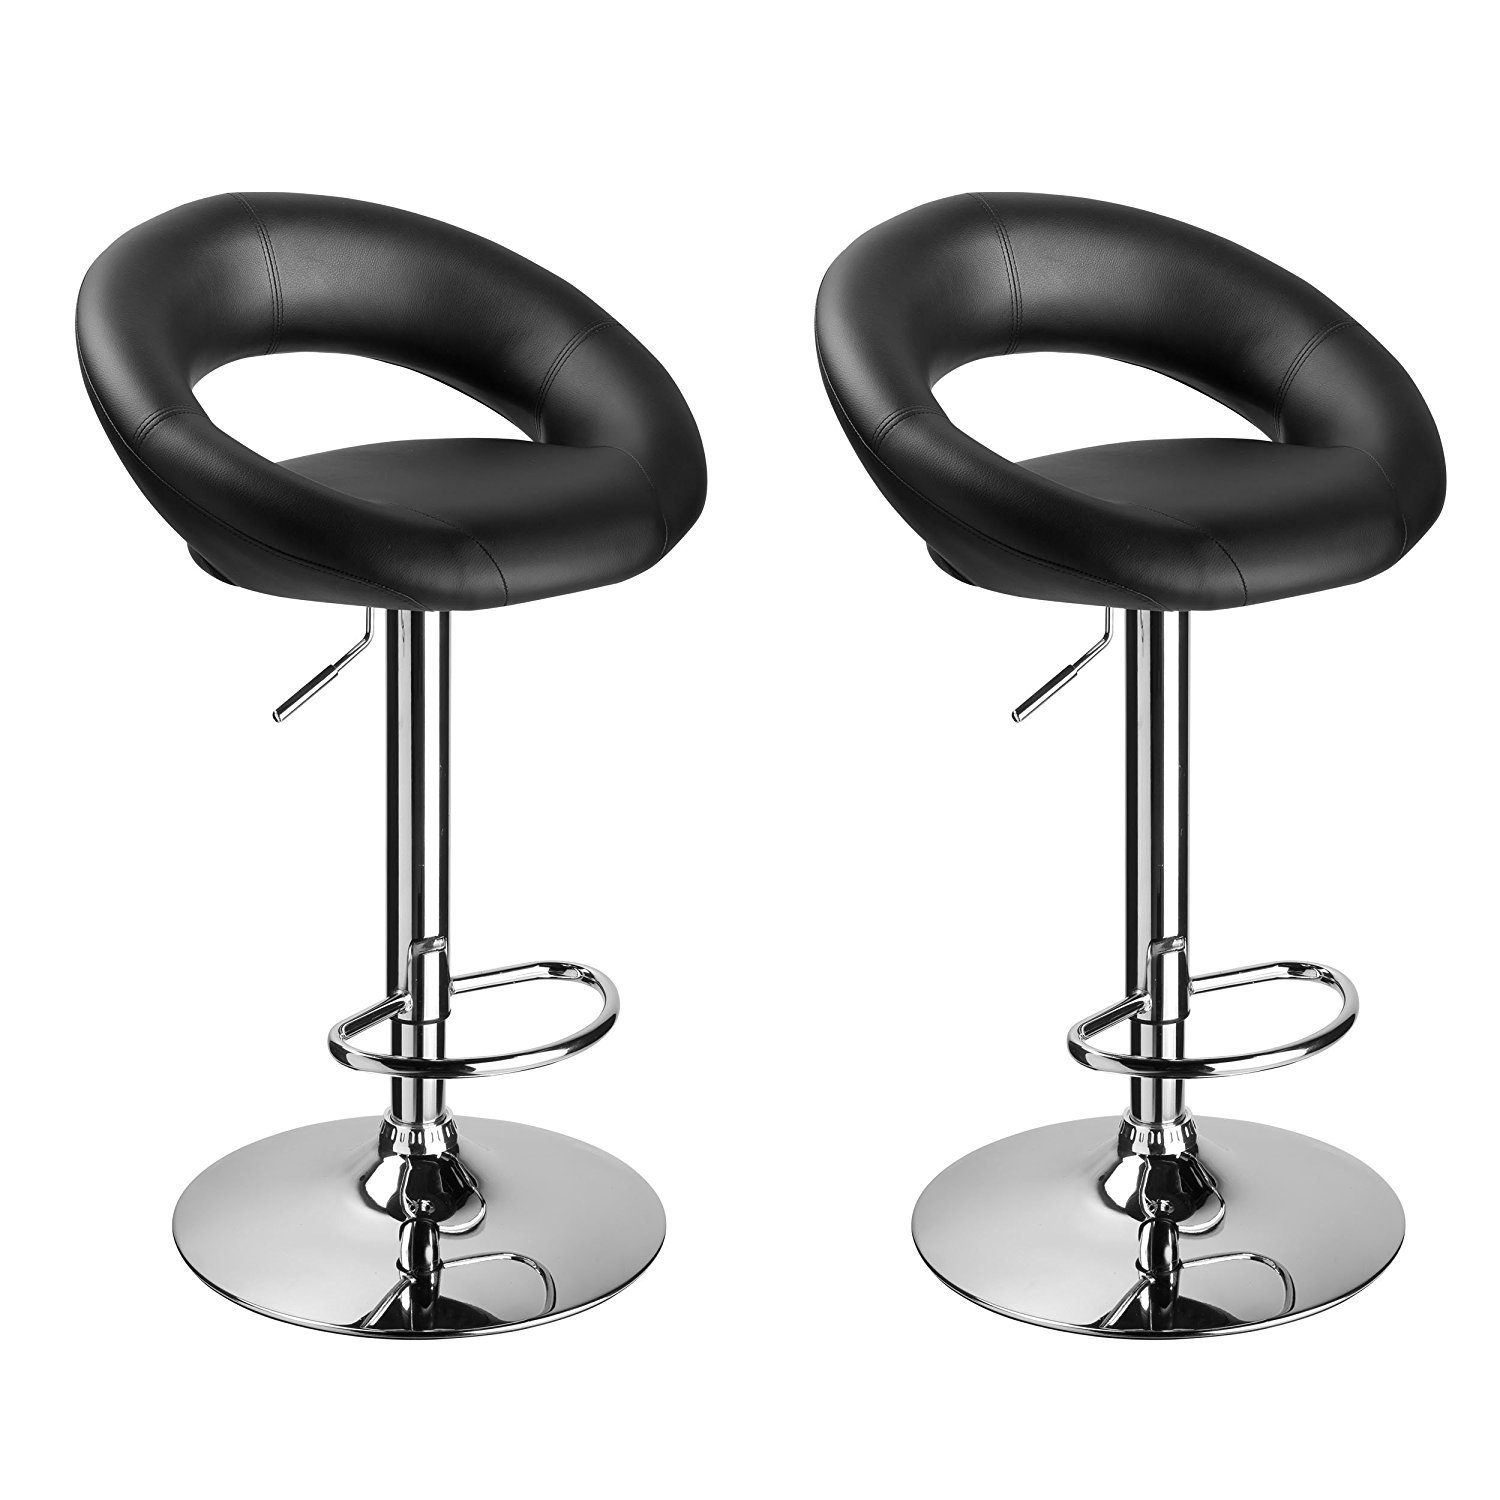 Duhome 2 PCS Black Barstools Contemporary Synthetic Leather Swizzle Swivel Hydraulic Adjustable Bar Stools Kitchen Counter Top Chair #4175 by Duhome Elegant Lifestyle (Image #1)